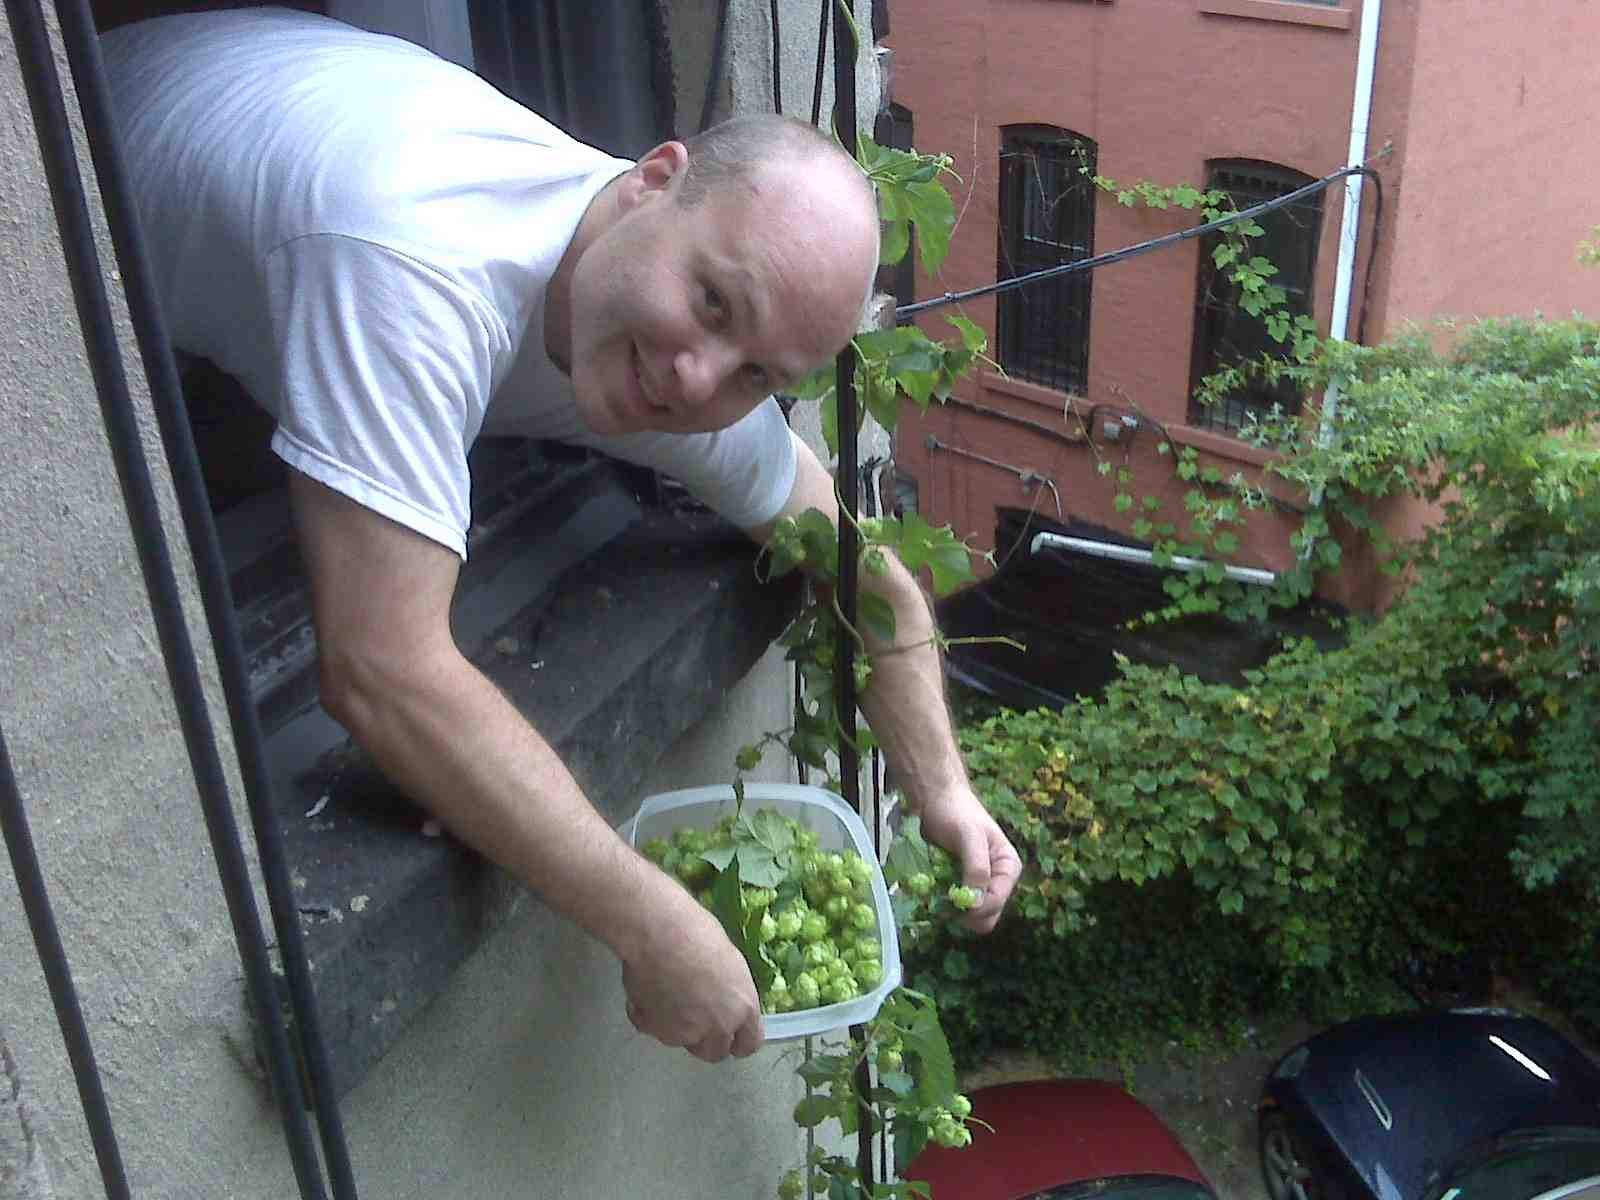 Brad Hillman reaps the bounty of Brooklyn's hops harvest